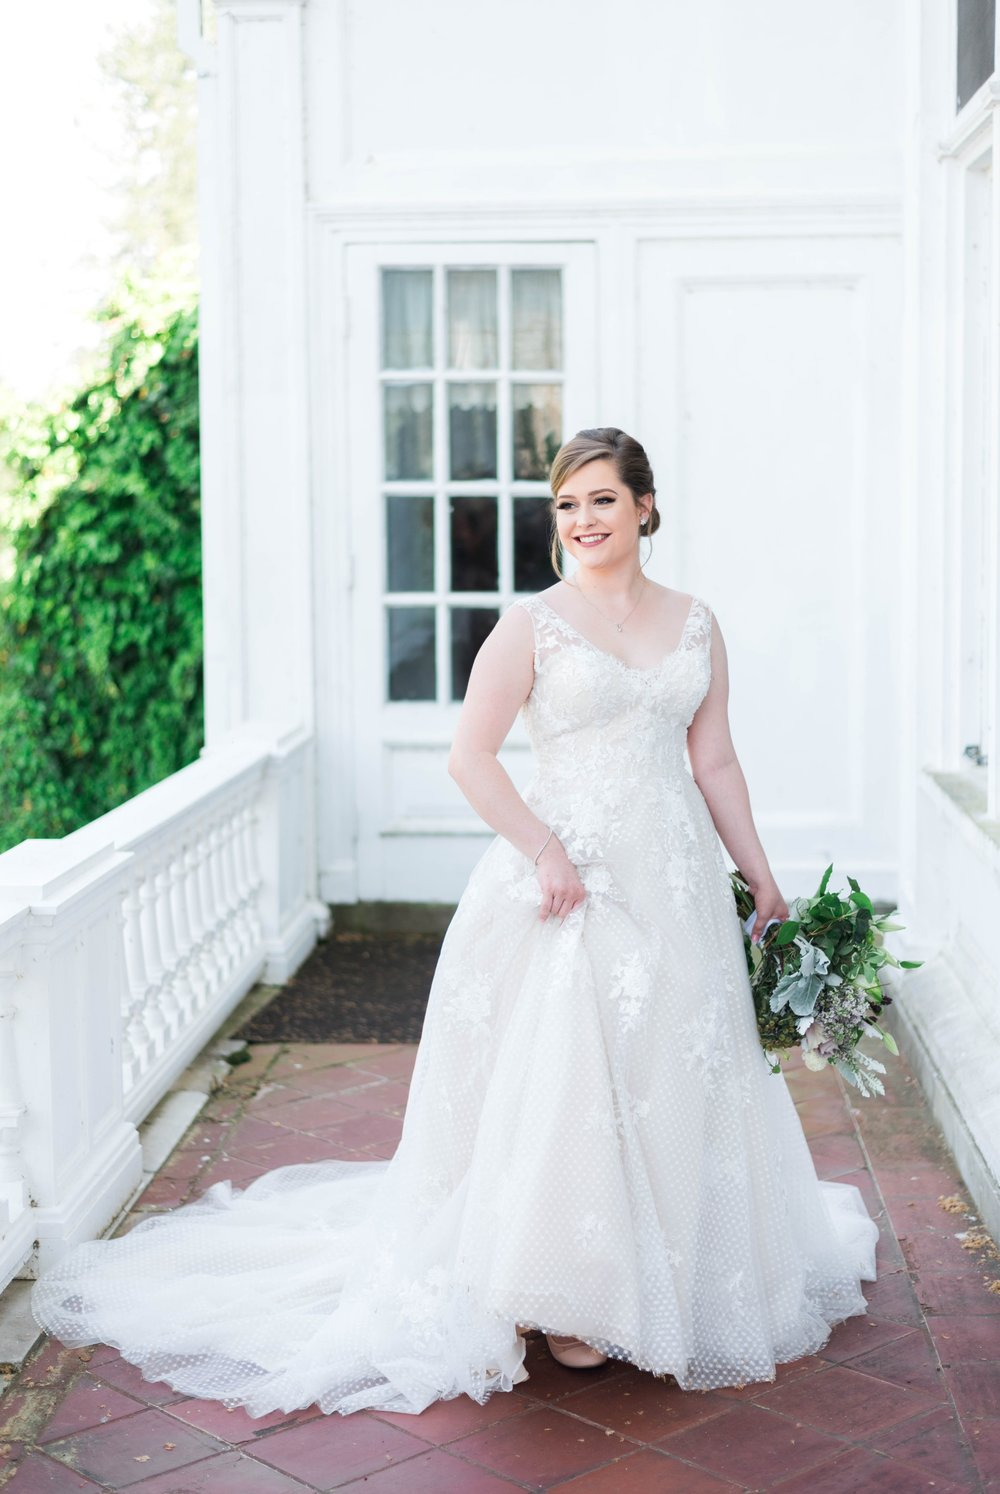 Jillian+Abi_OakridgeEstate_Wedding_VirginiaWeddingPhotographer_SpringWedding 28.jpg